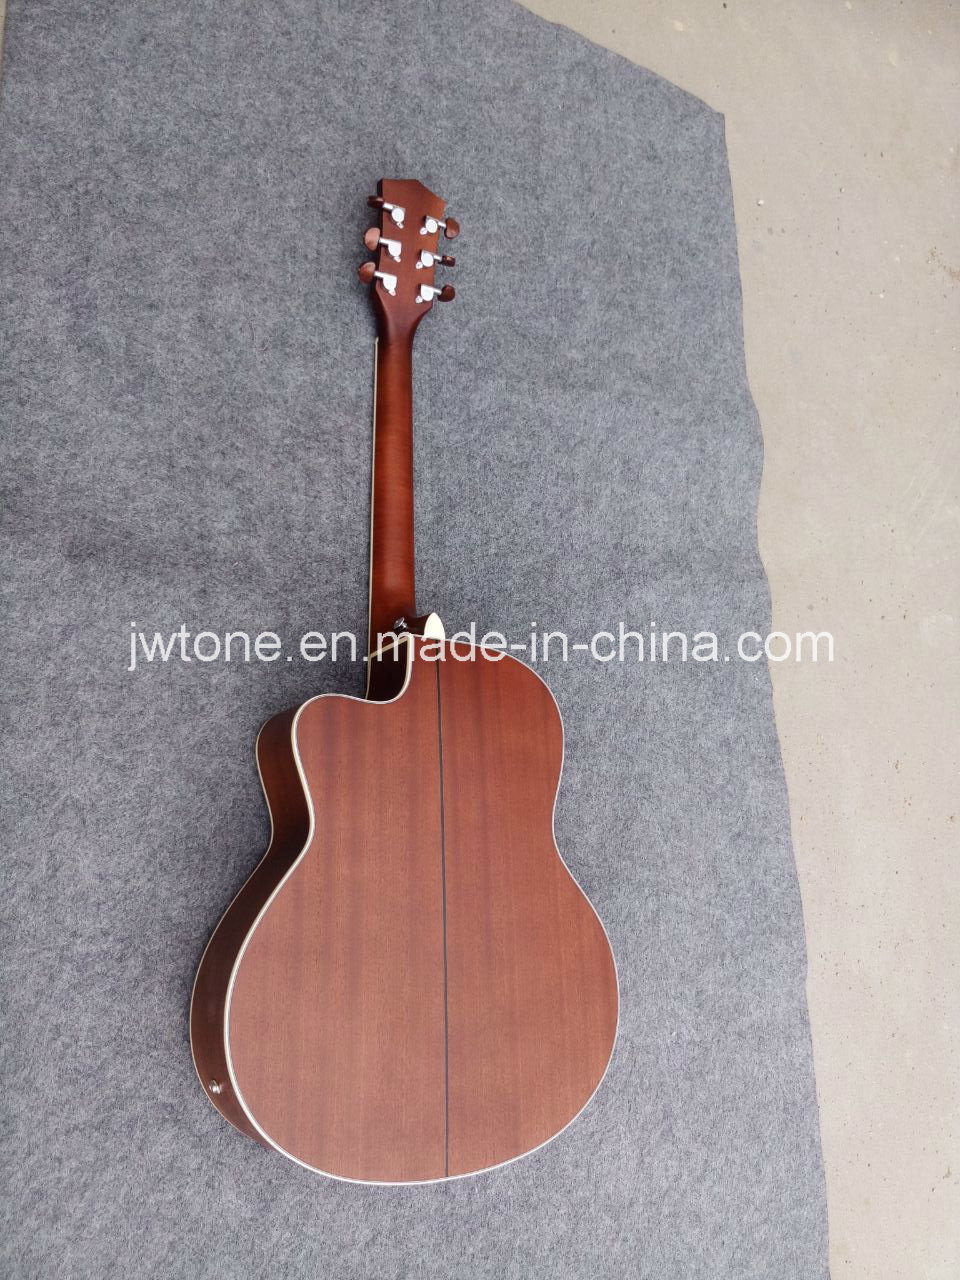 Multi Binding Abalone Inlay Custom Cutaway Quality Acoustic Guitar